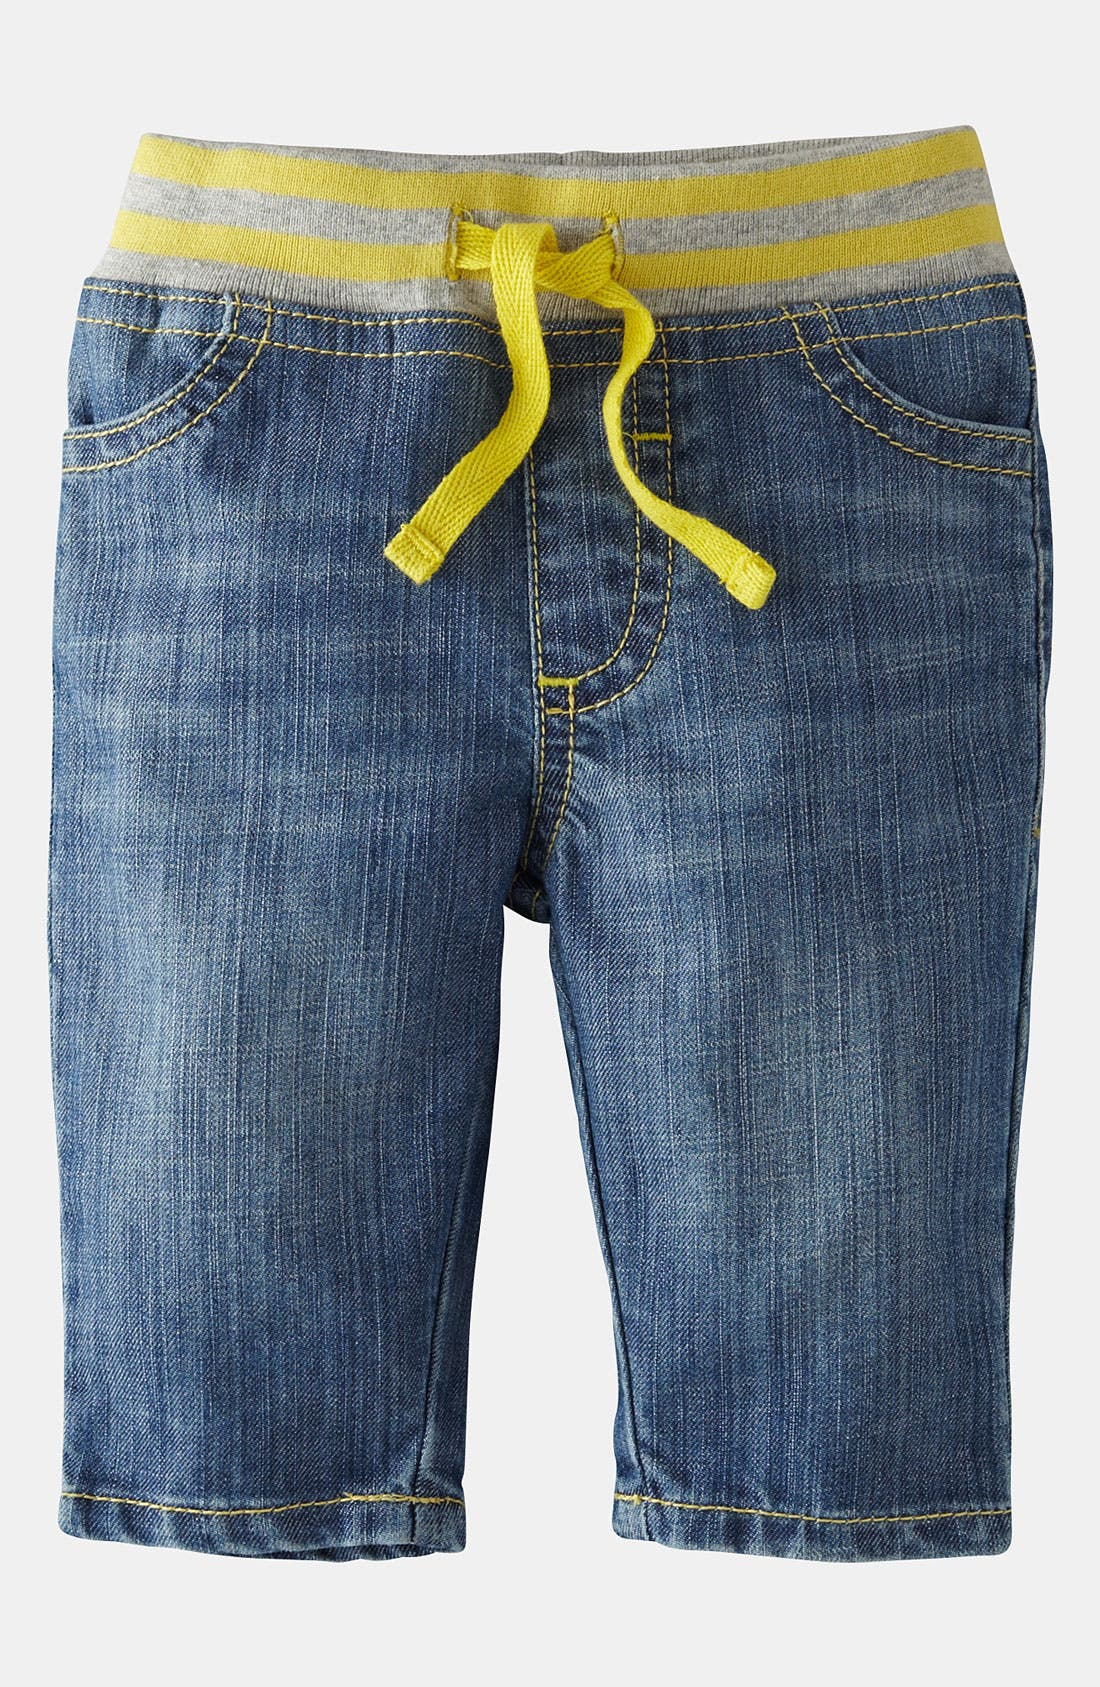 Alternate Image 1 Selected - Mini Boden 'Baby' Jeans (Baby)